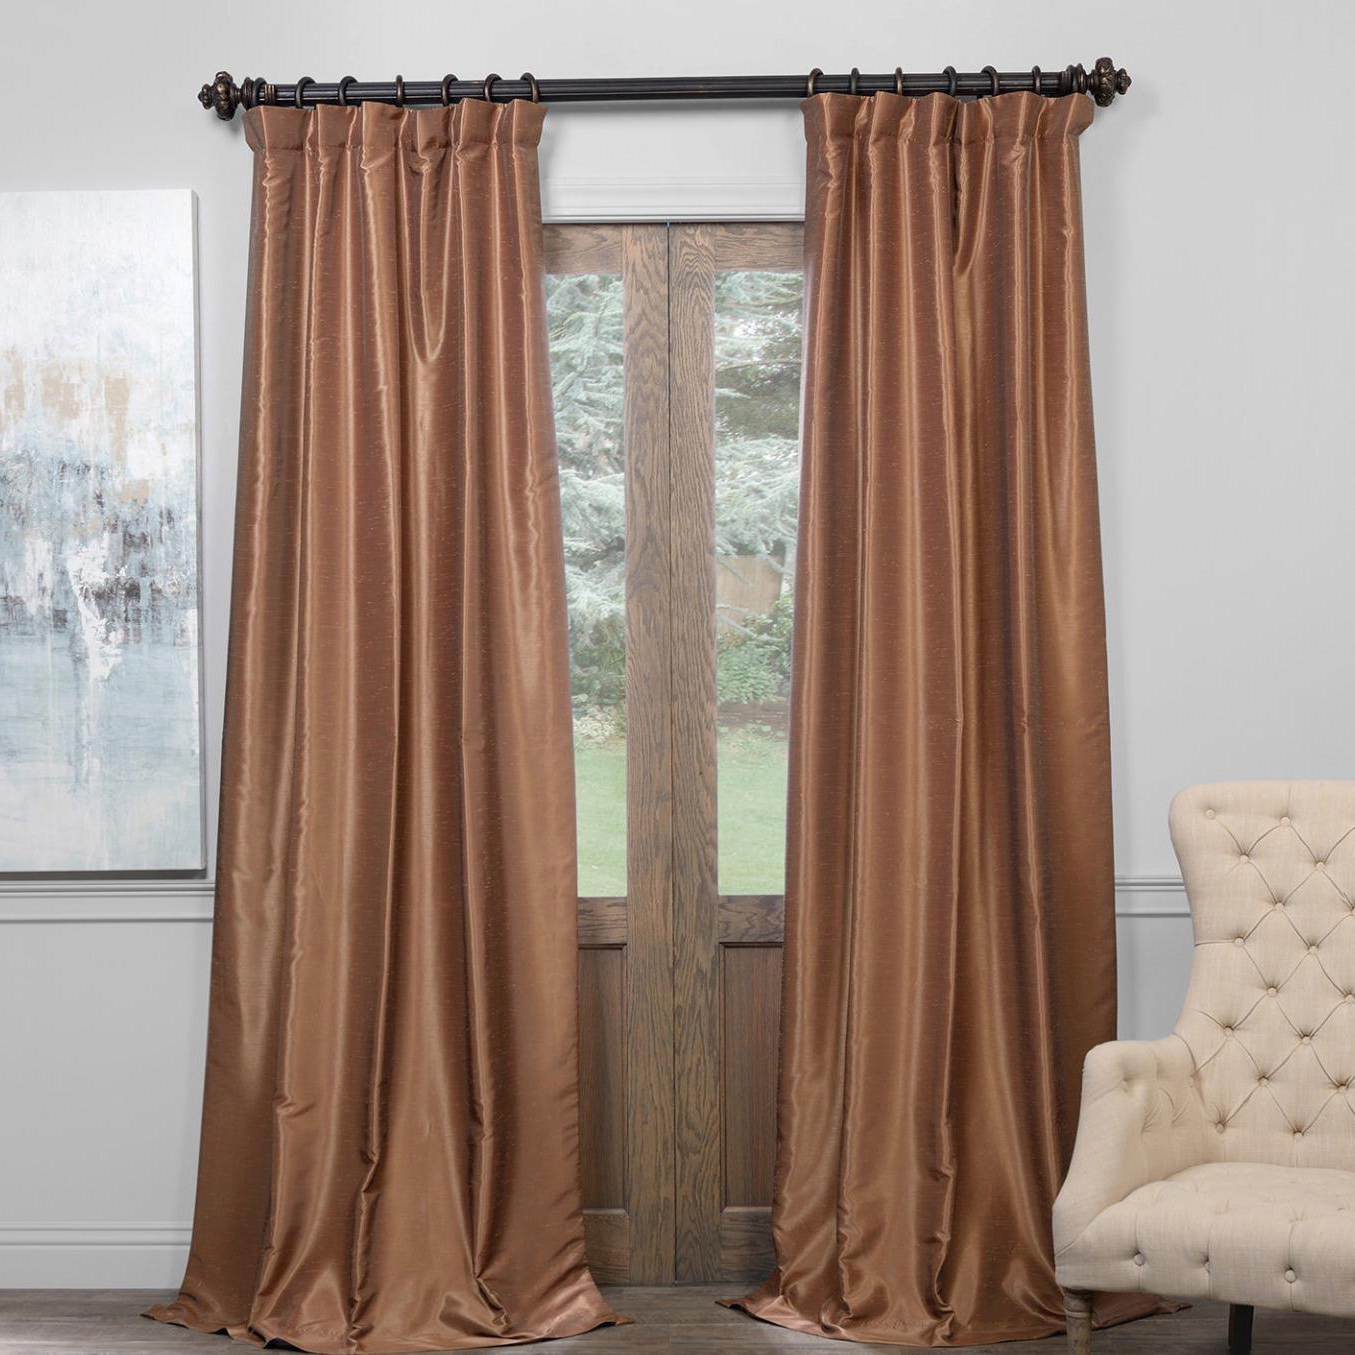 Exclusive Fabrics True Blackout Vintage Textured Faux Dupioni Silk Curtain Panel Pertaining To Most Popular True Blackout Vintage Textured Faux Silk Curtain Panels (View 5 of 20)